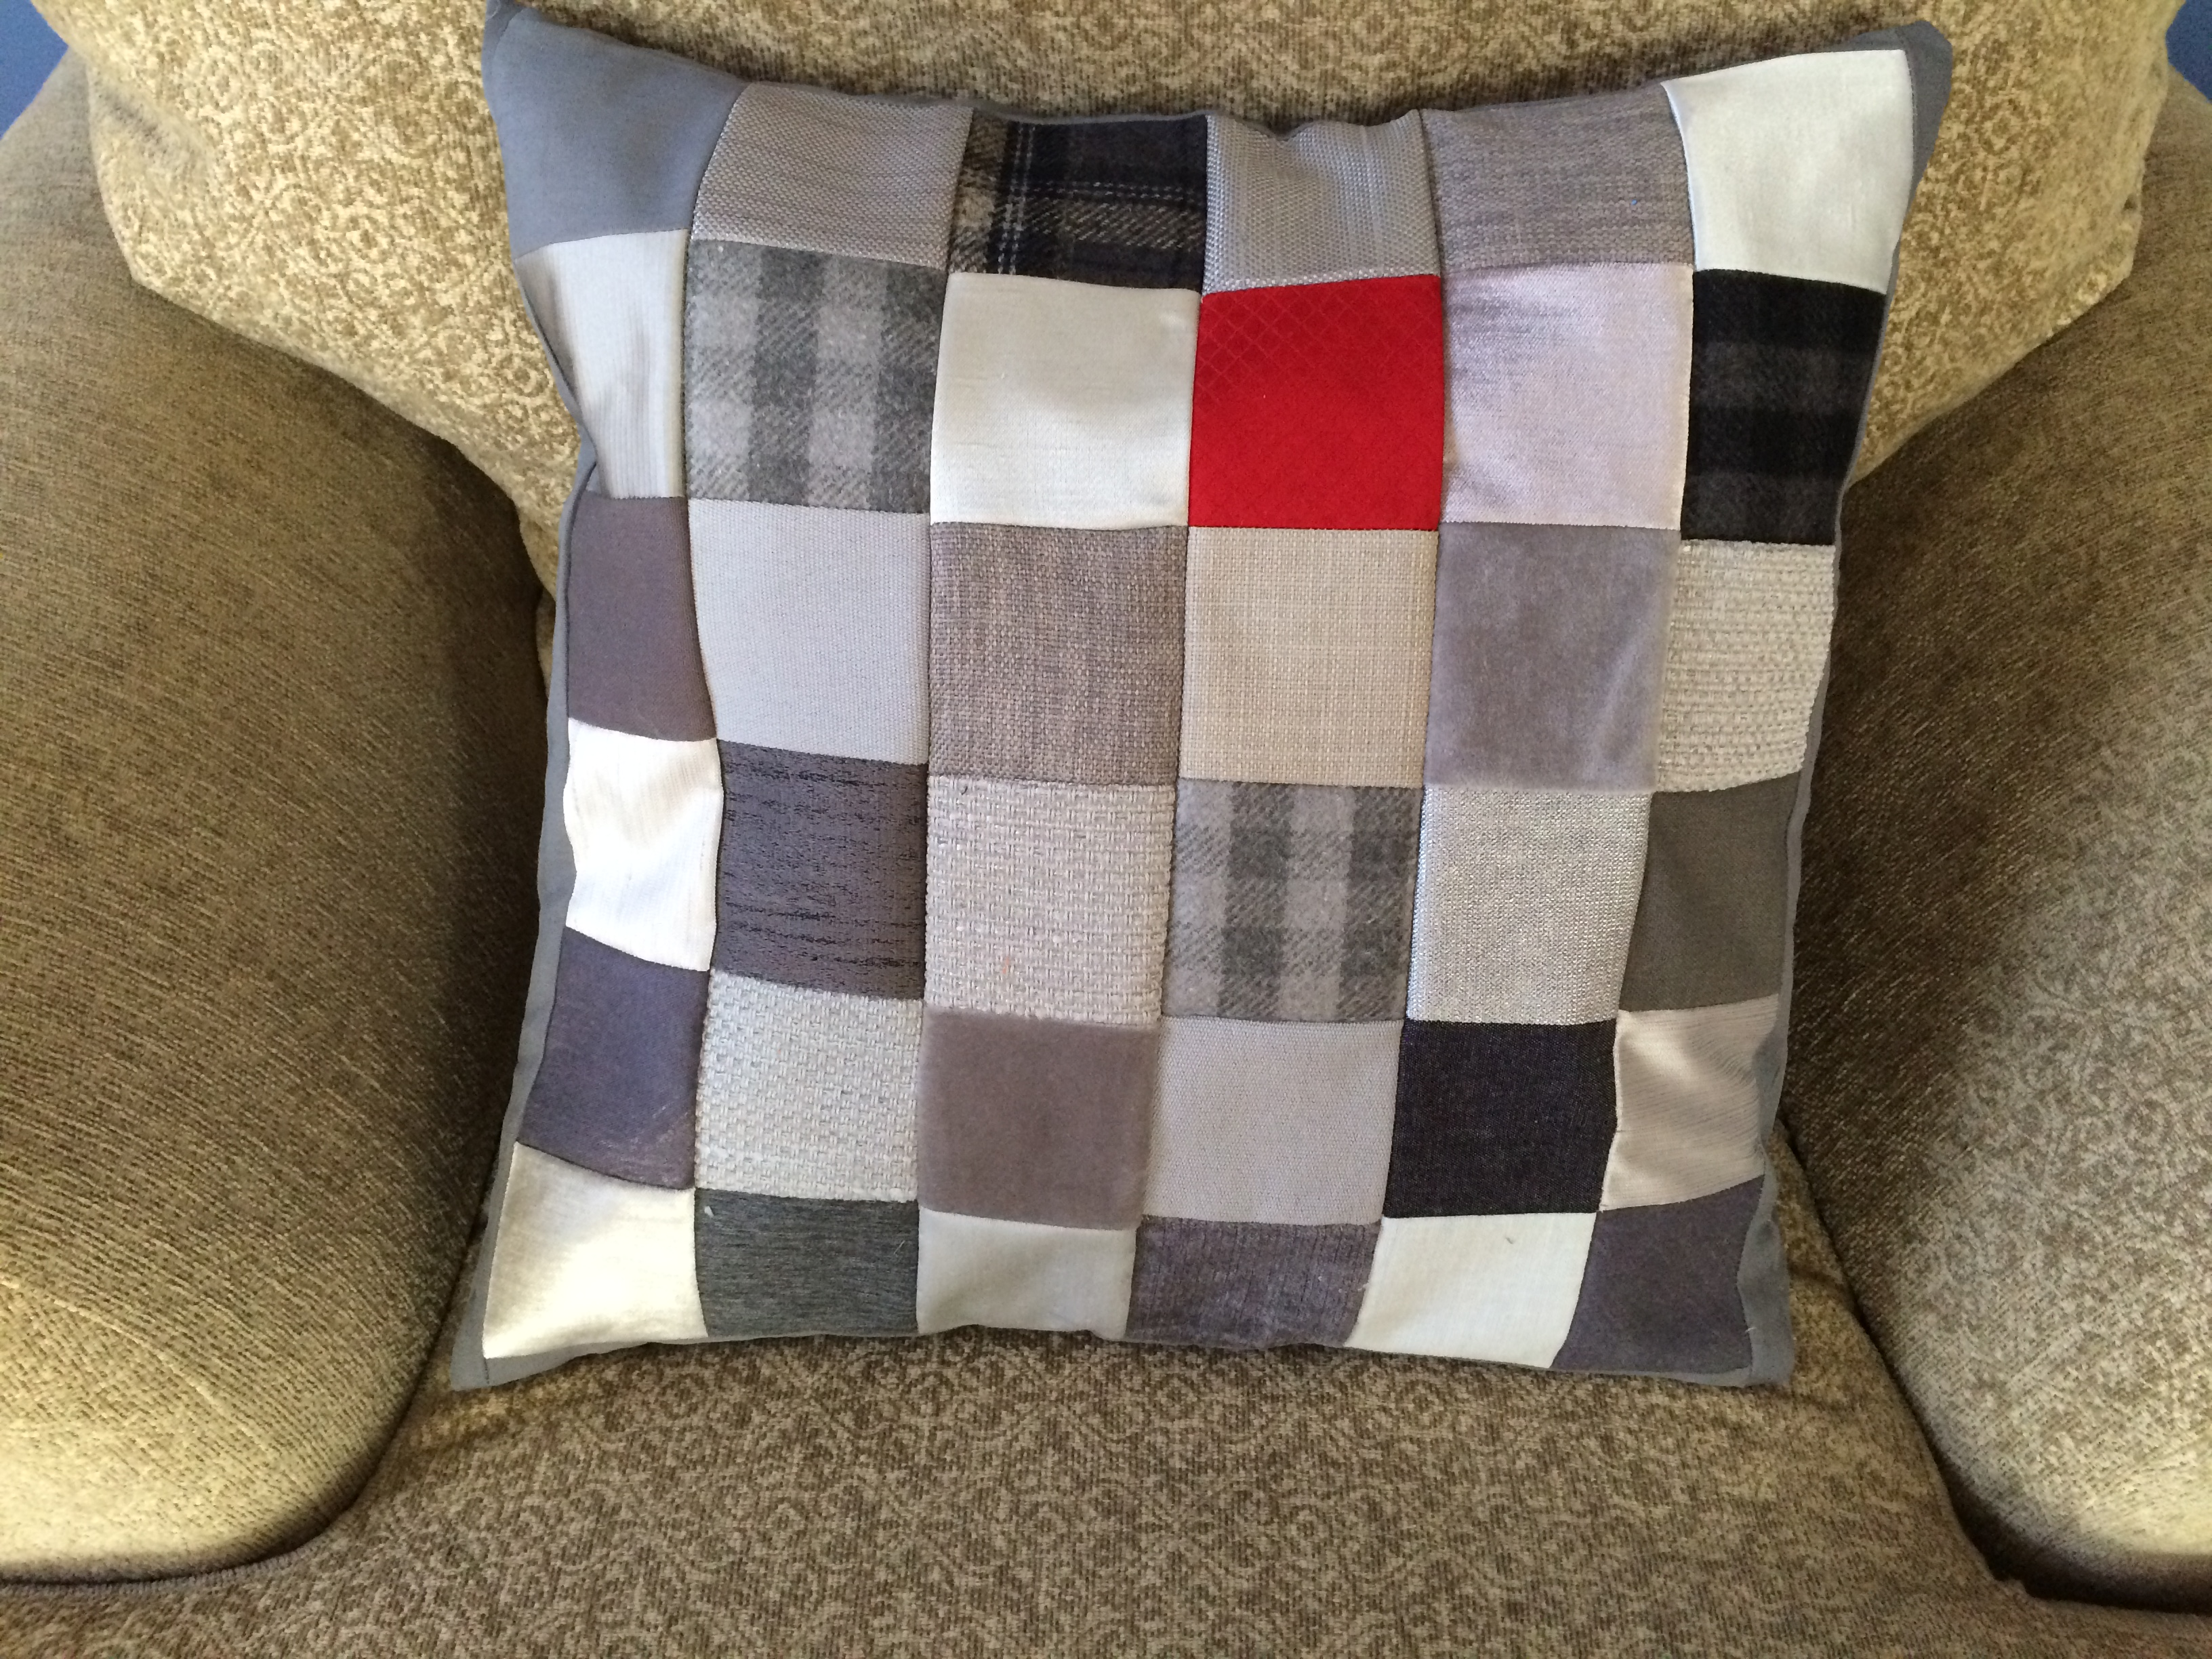 Completed pillow from upholstery scraps